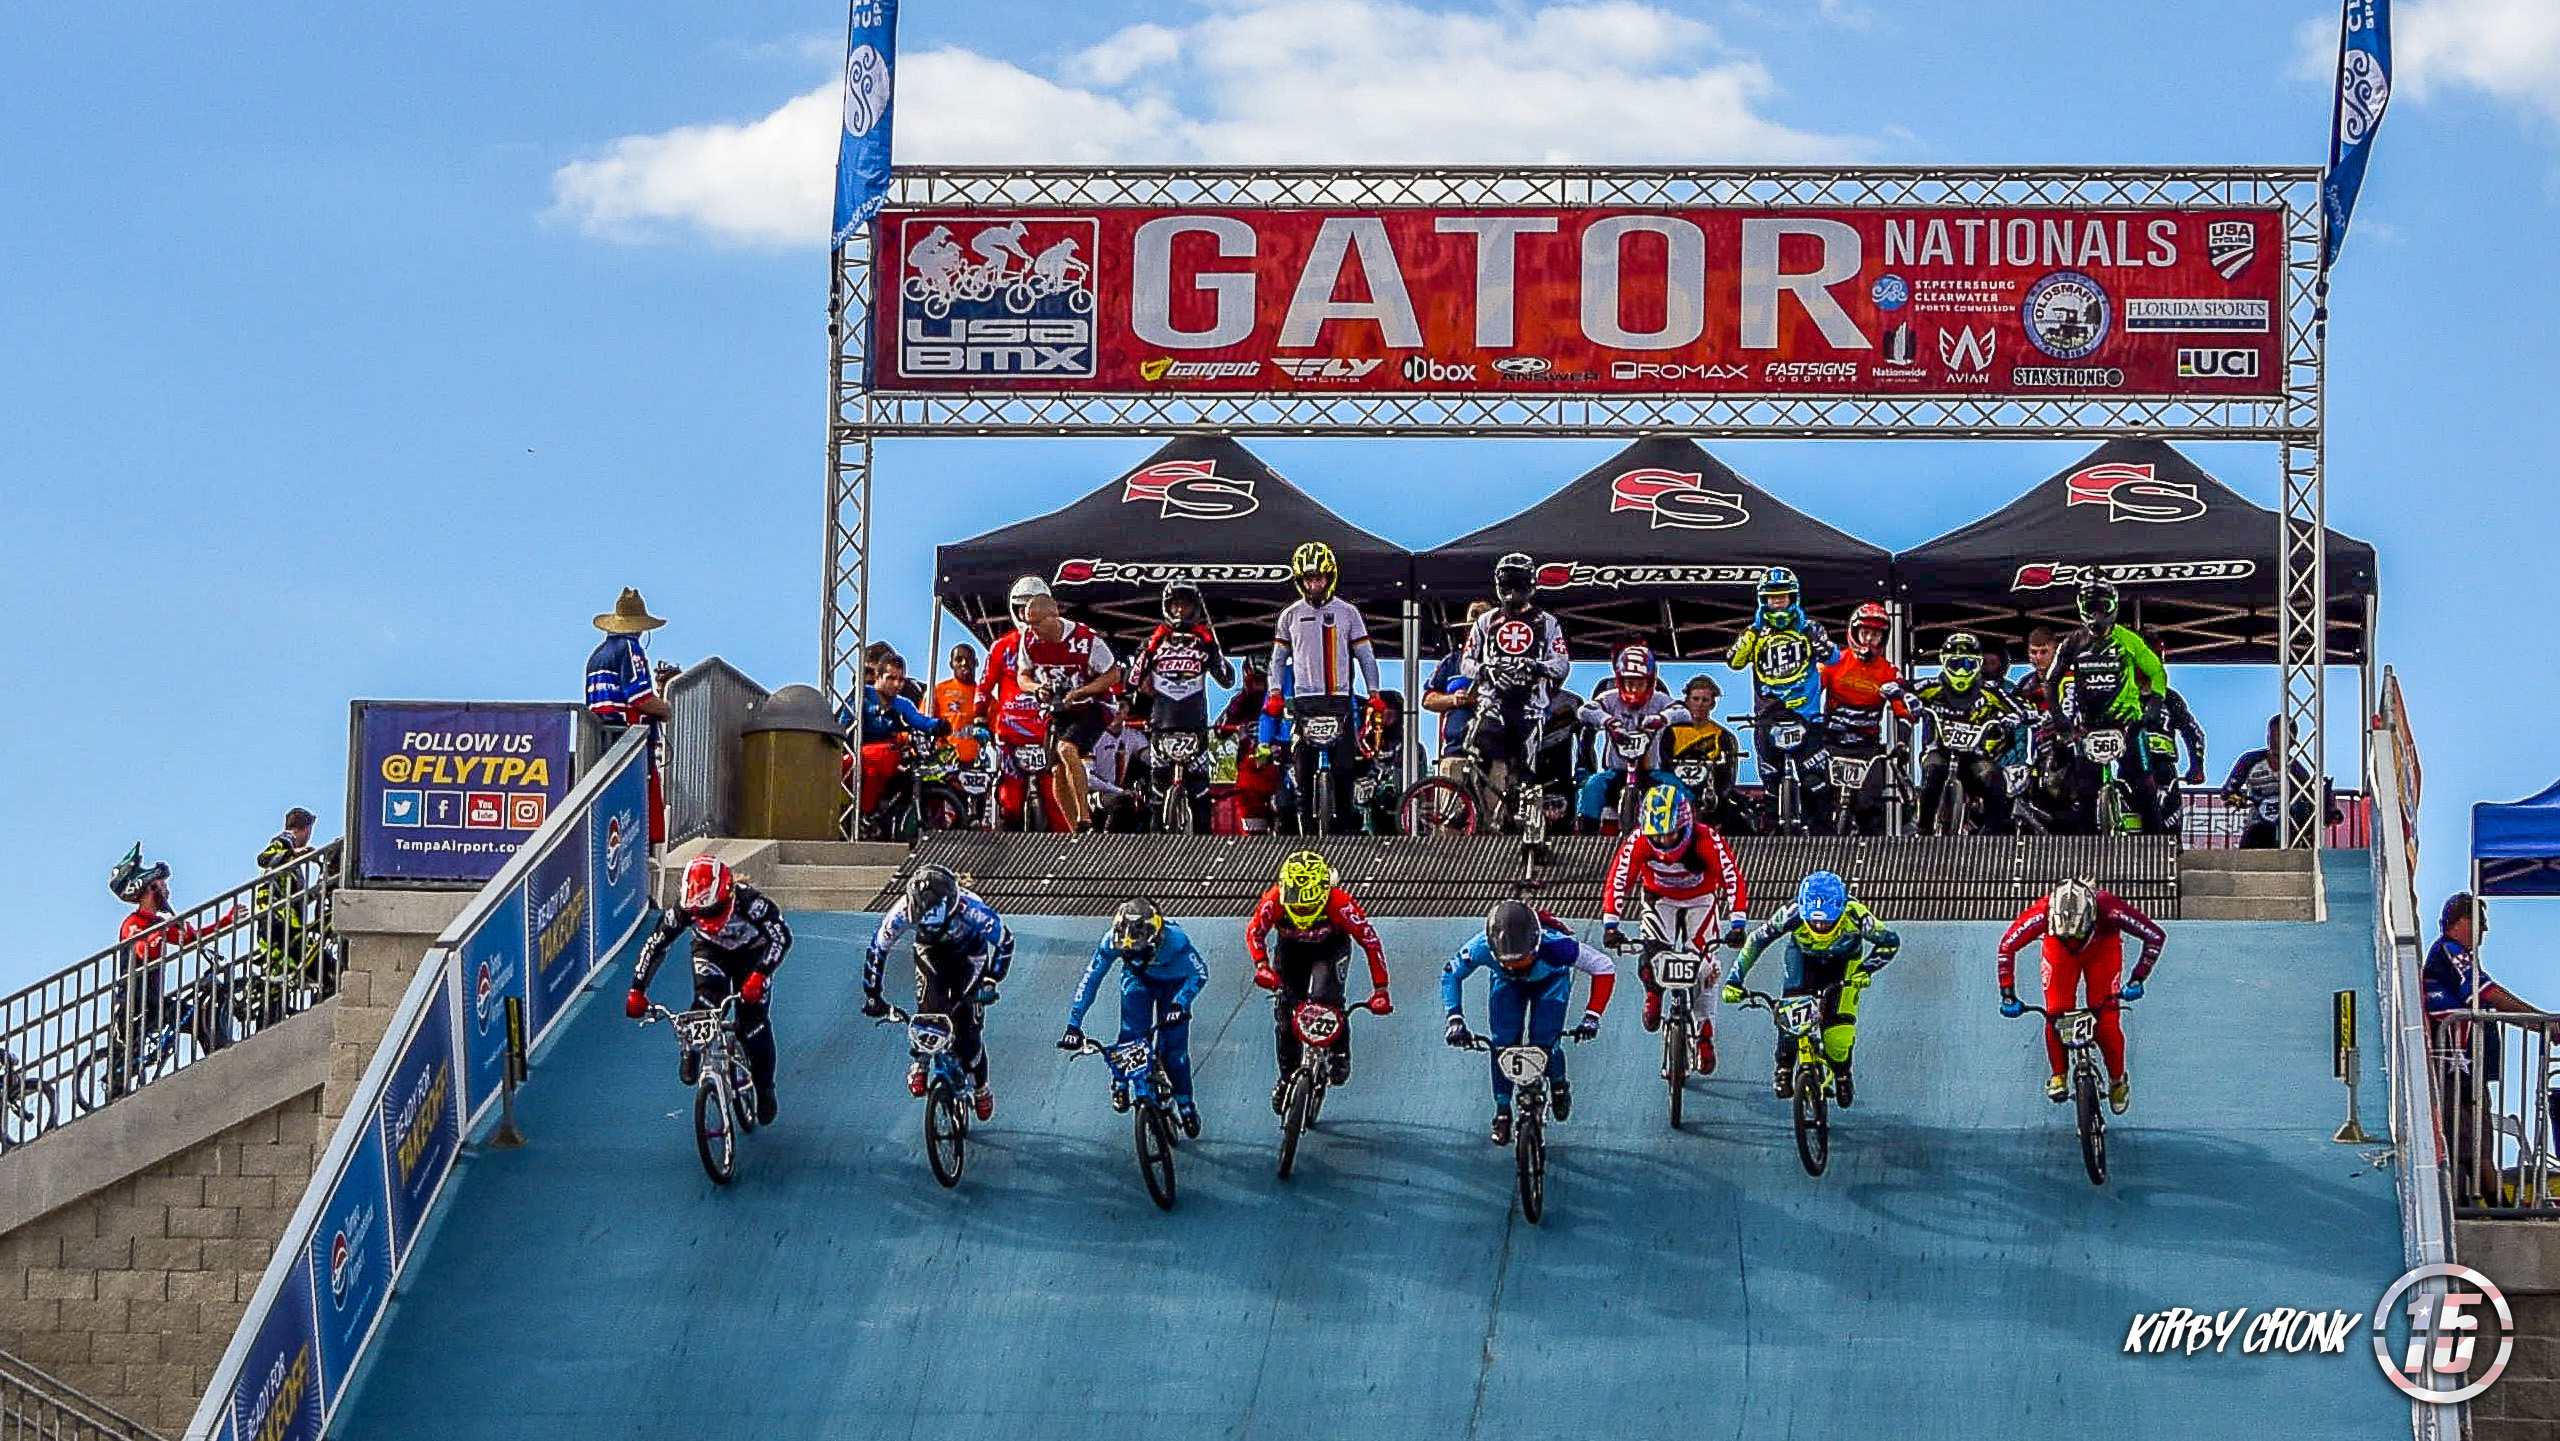 Gator Nationals Day 1 - Kirby Cronk / Fifteen BMX